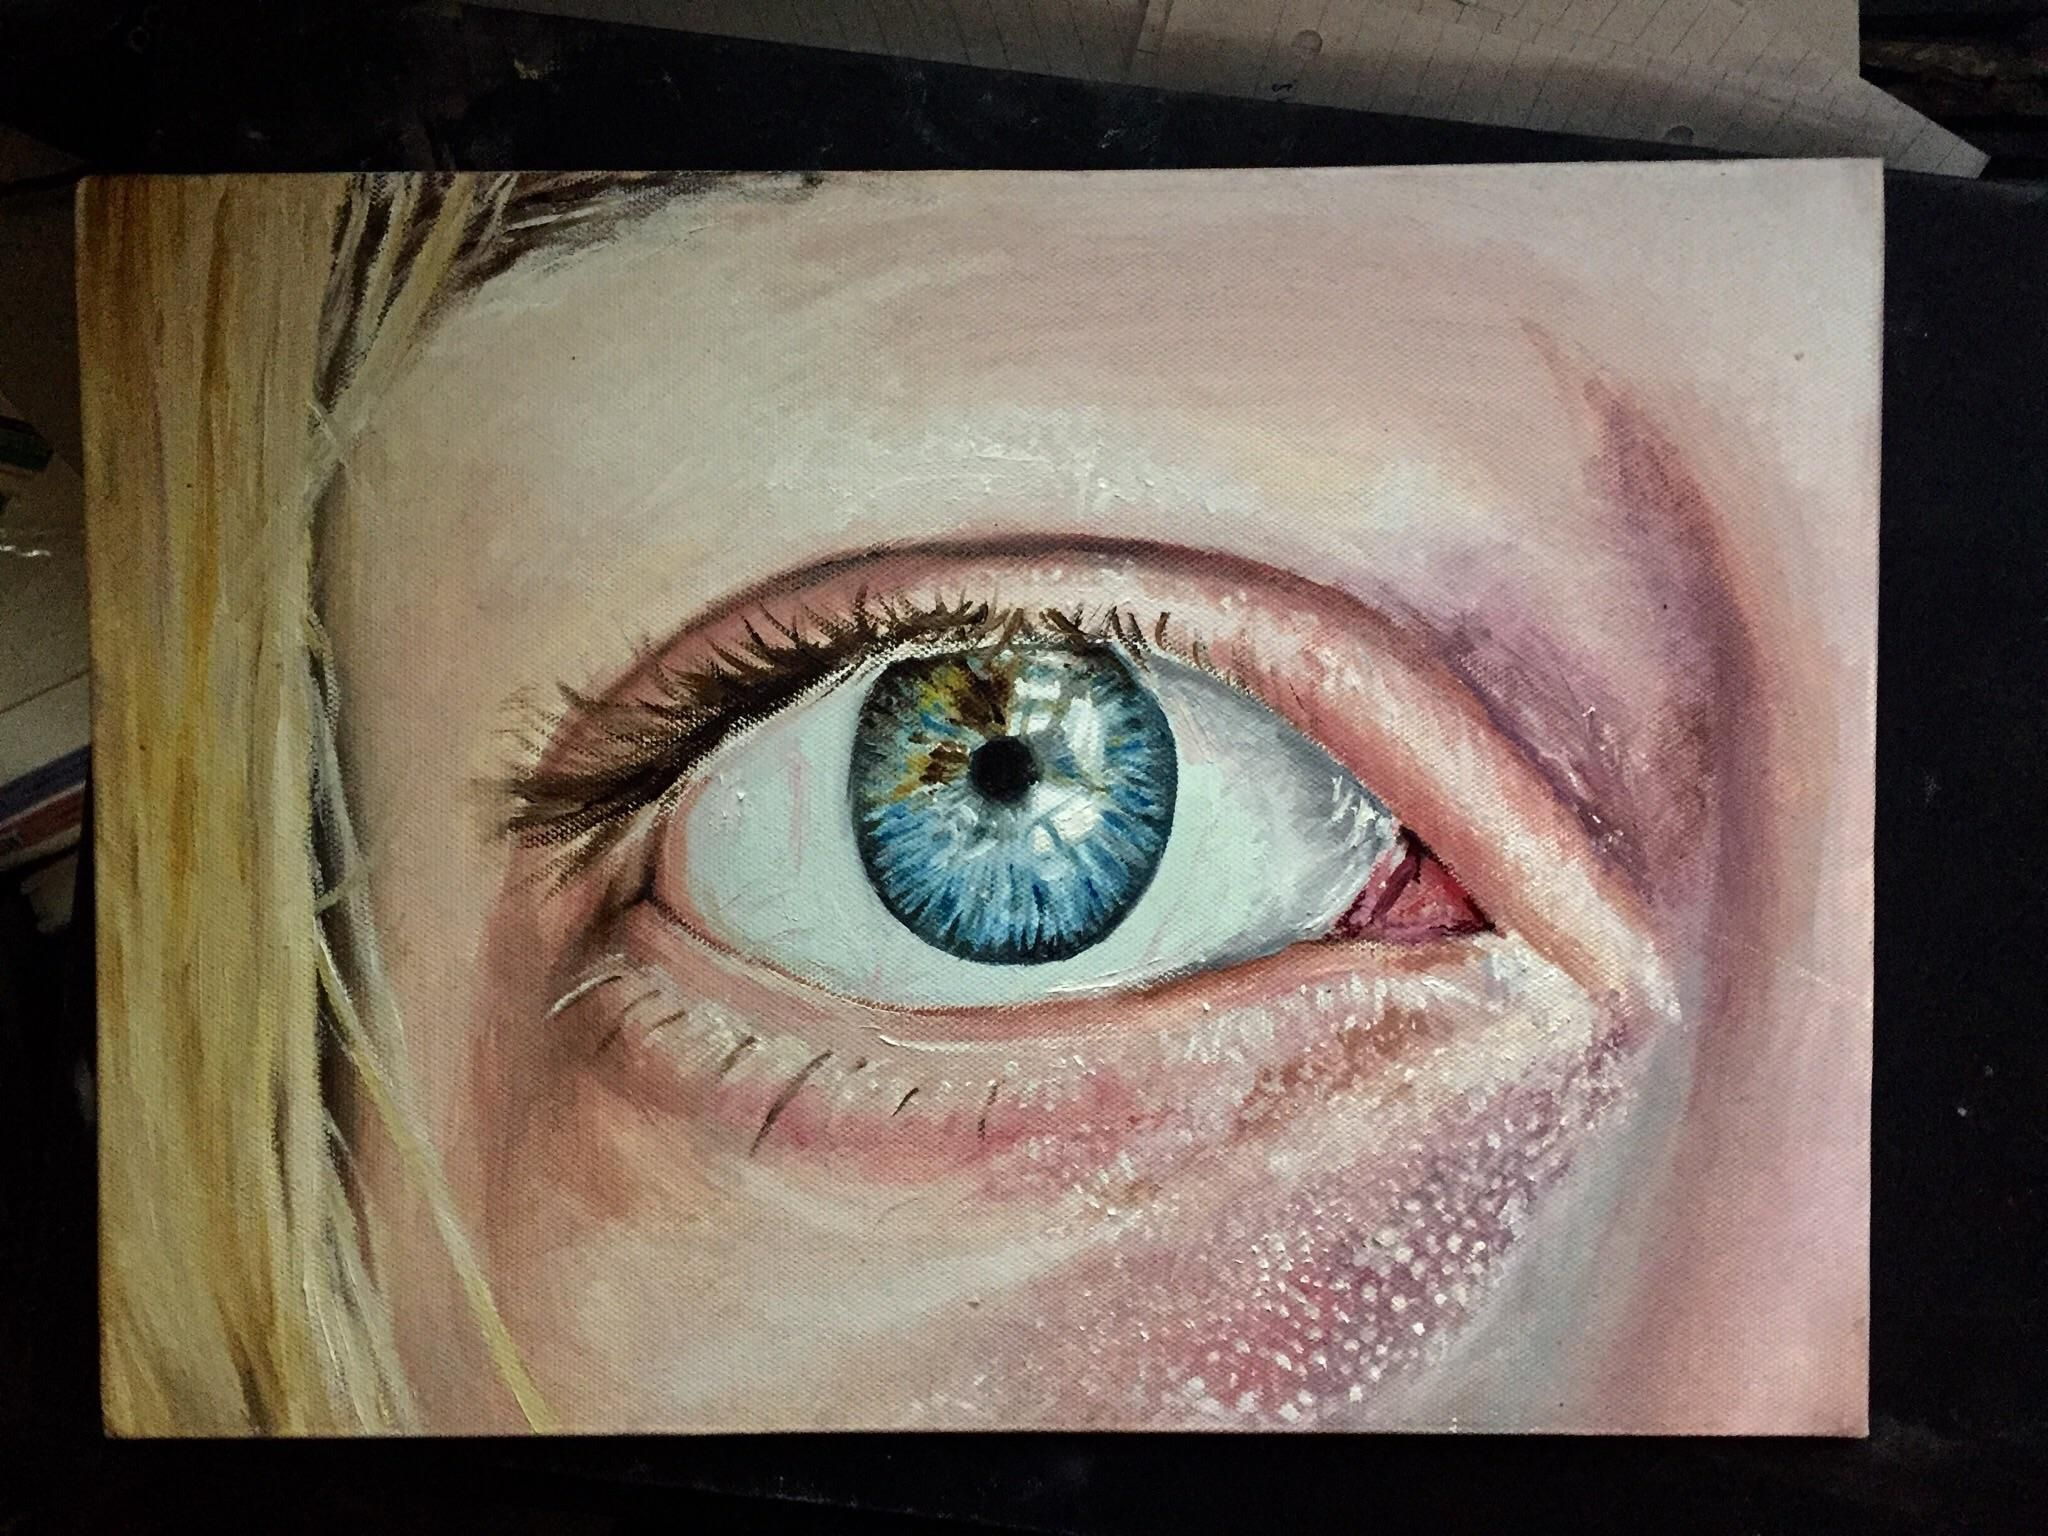 i cant tell if my oil painting is good or bad could i get some